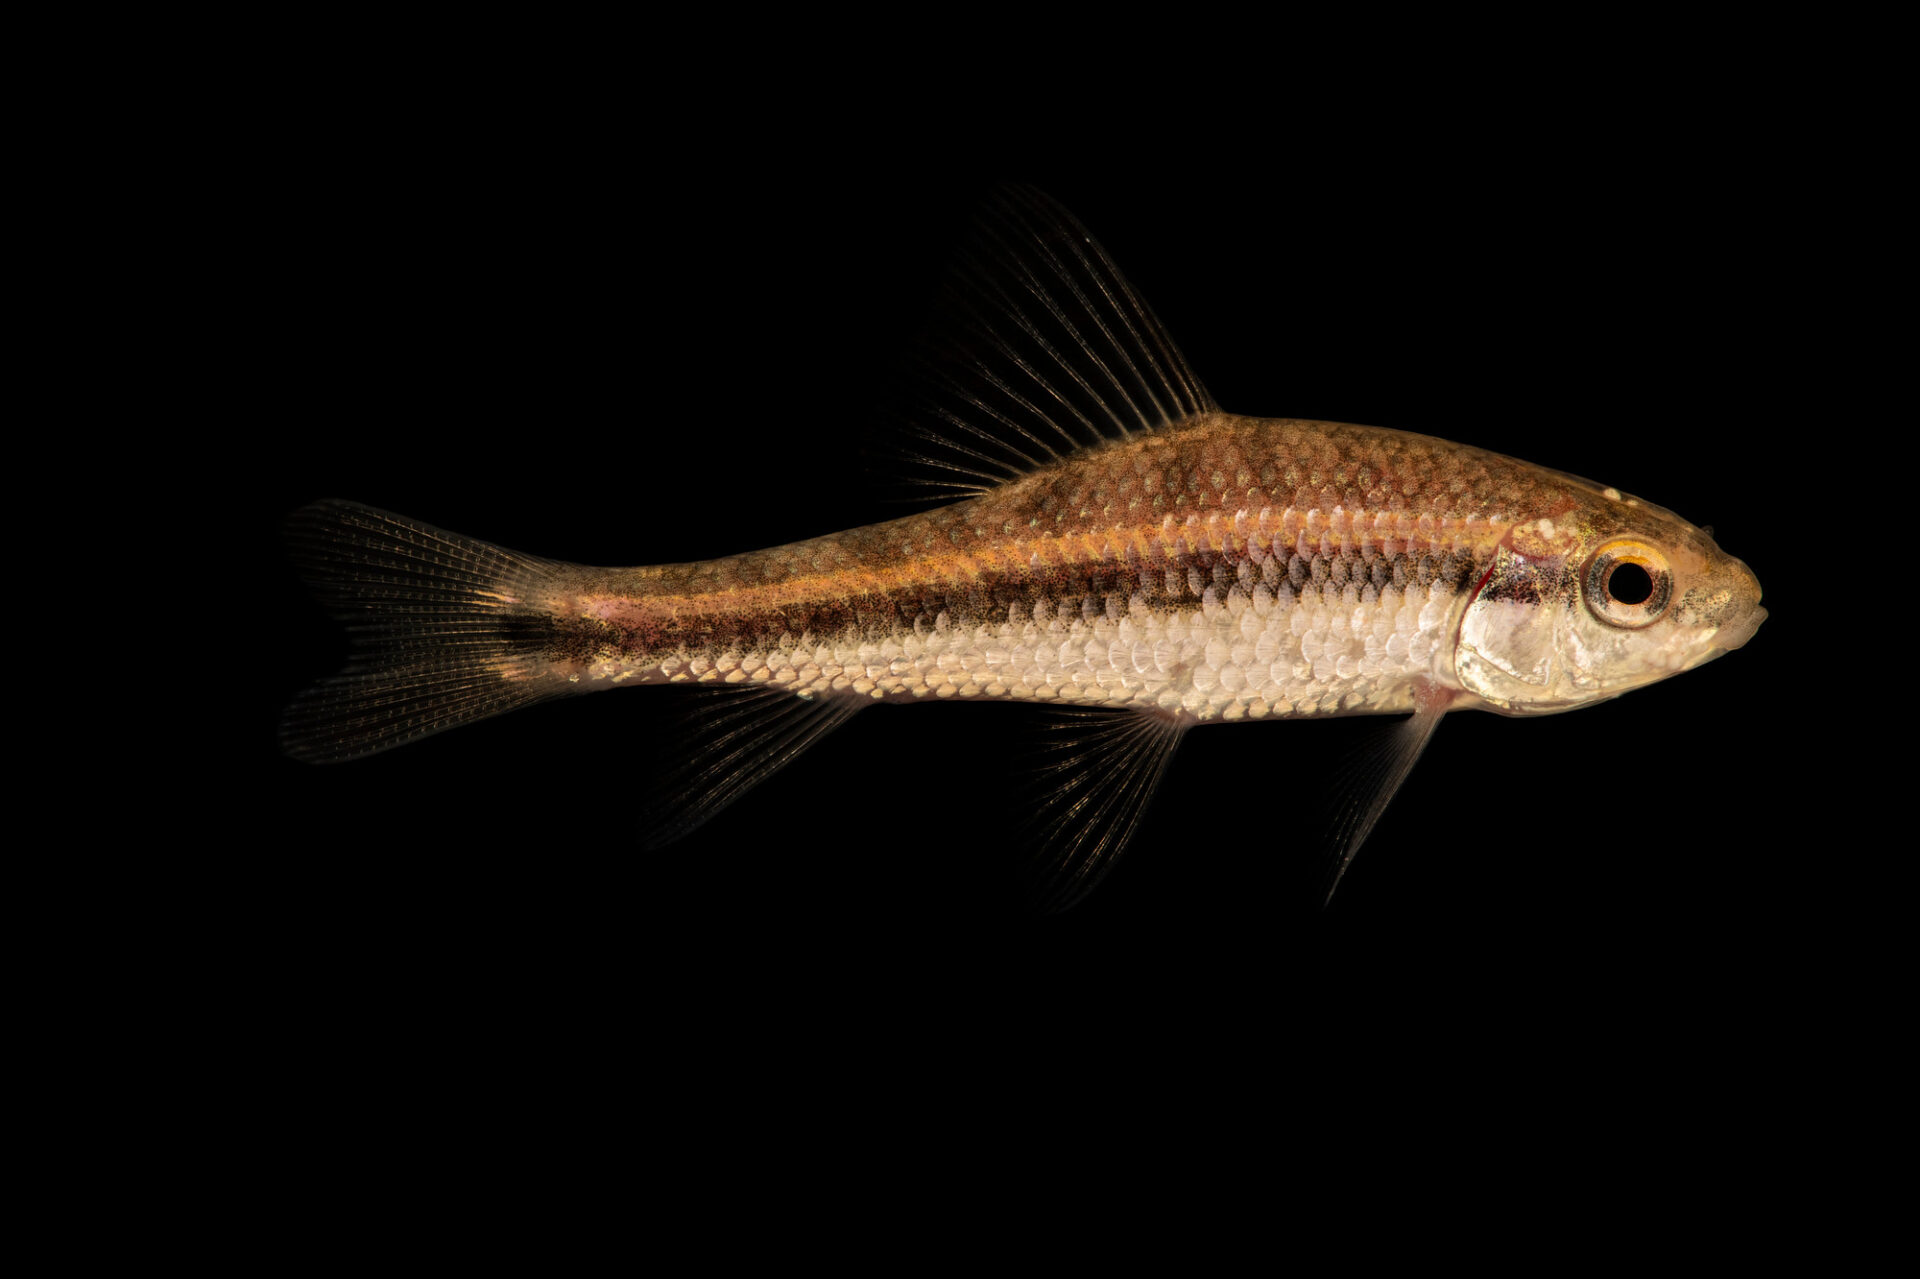 Photo: A lake chubsucker (Erimyzon sucetta) from a private collection in Knoxville, Tennessee.